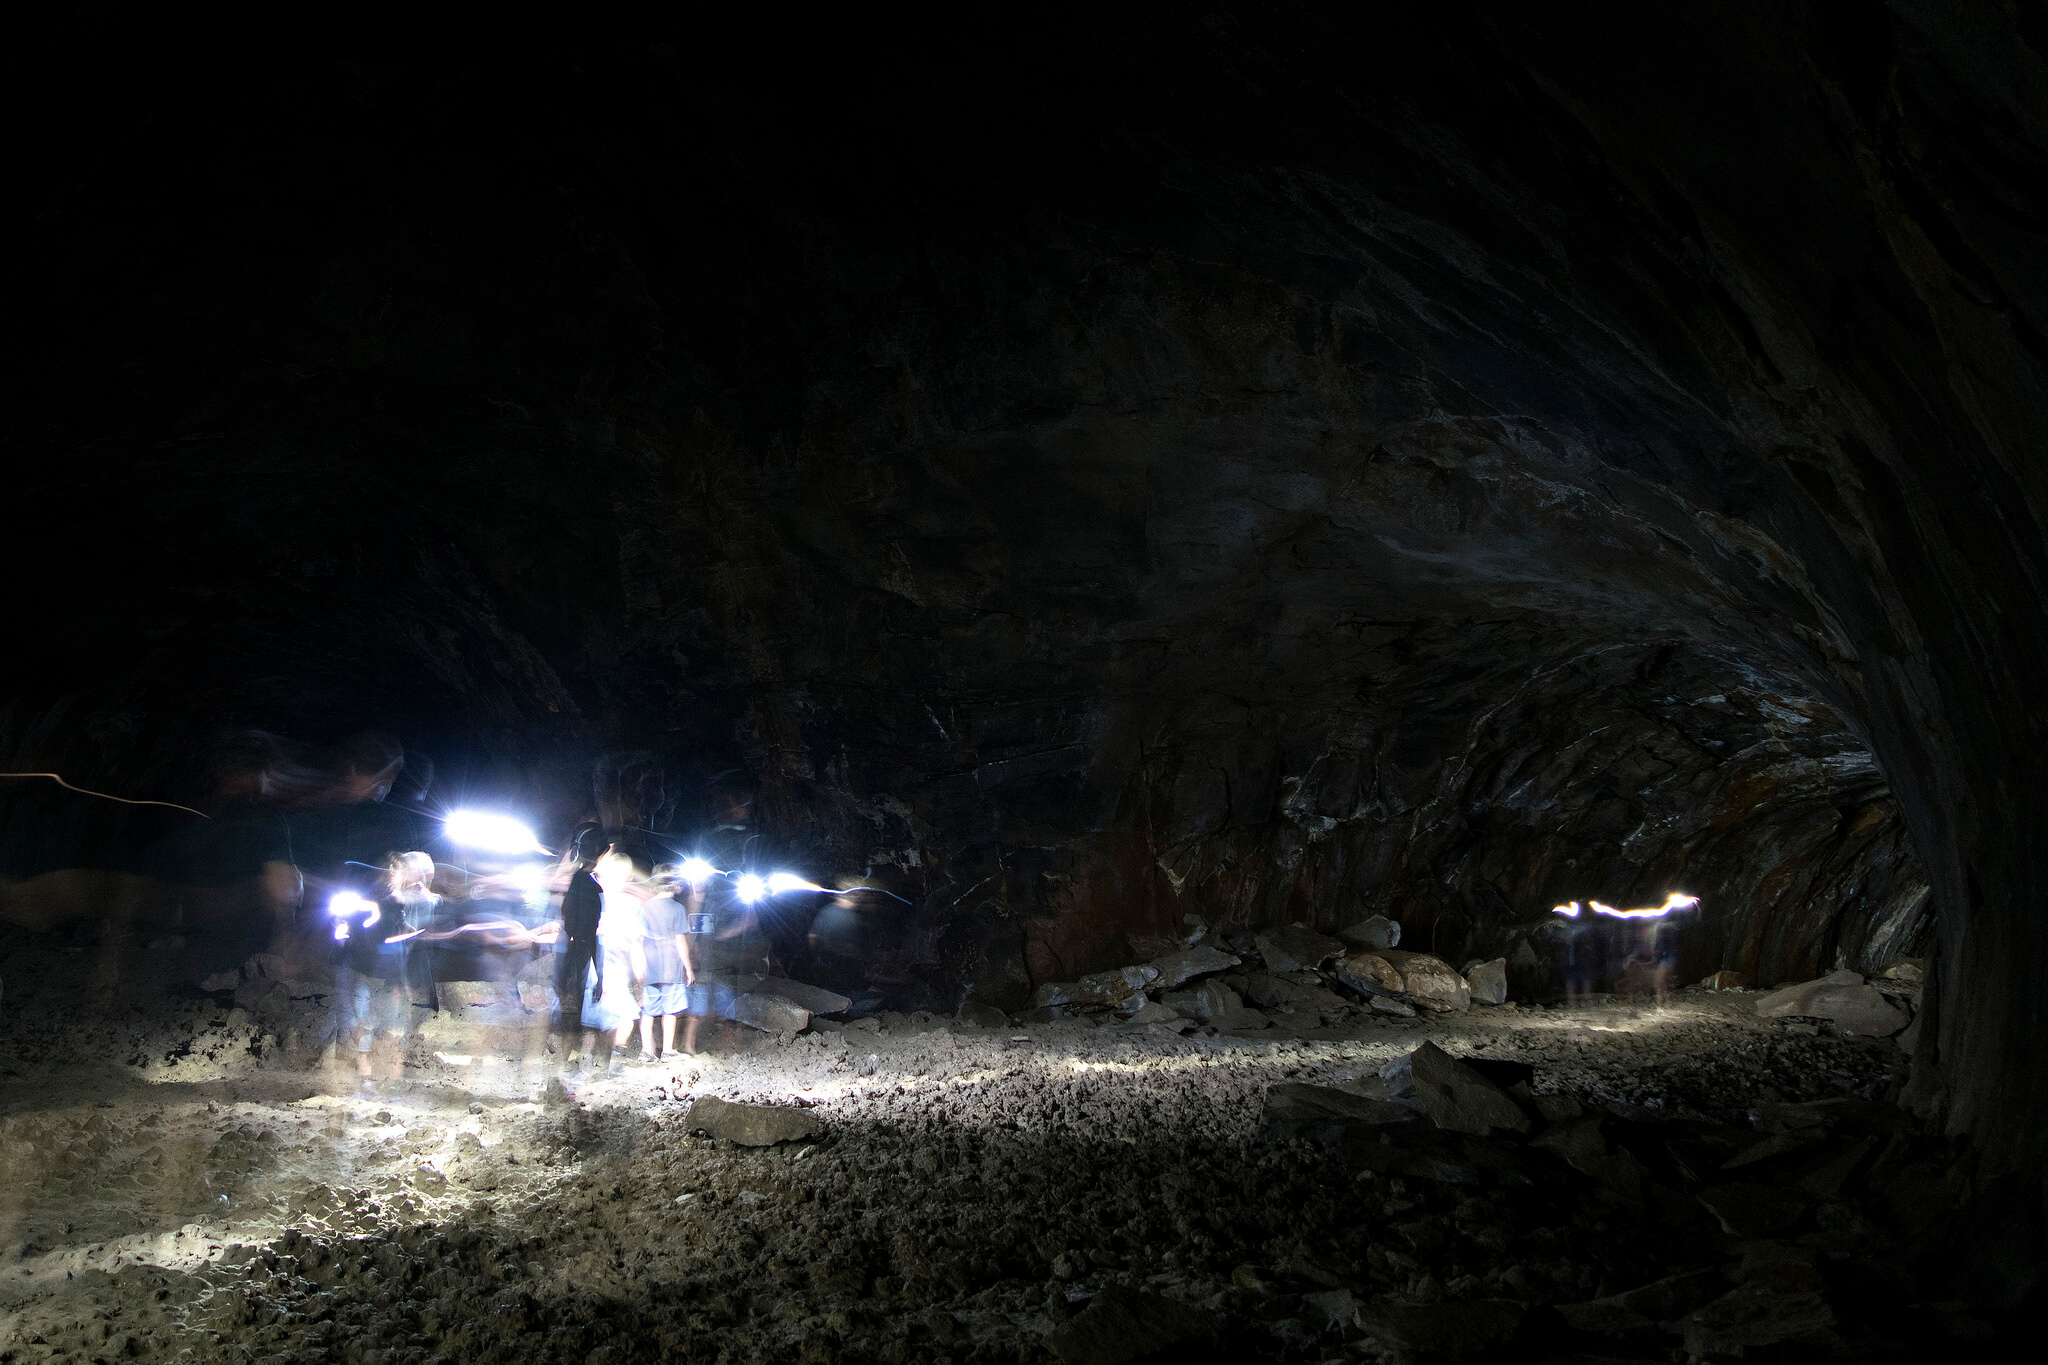 Interior of the Lava River Cave in Arizona. People are spelunking with artificial lighting. Flickr USer Nicholas Schnur